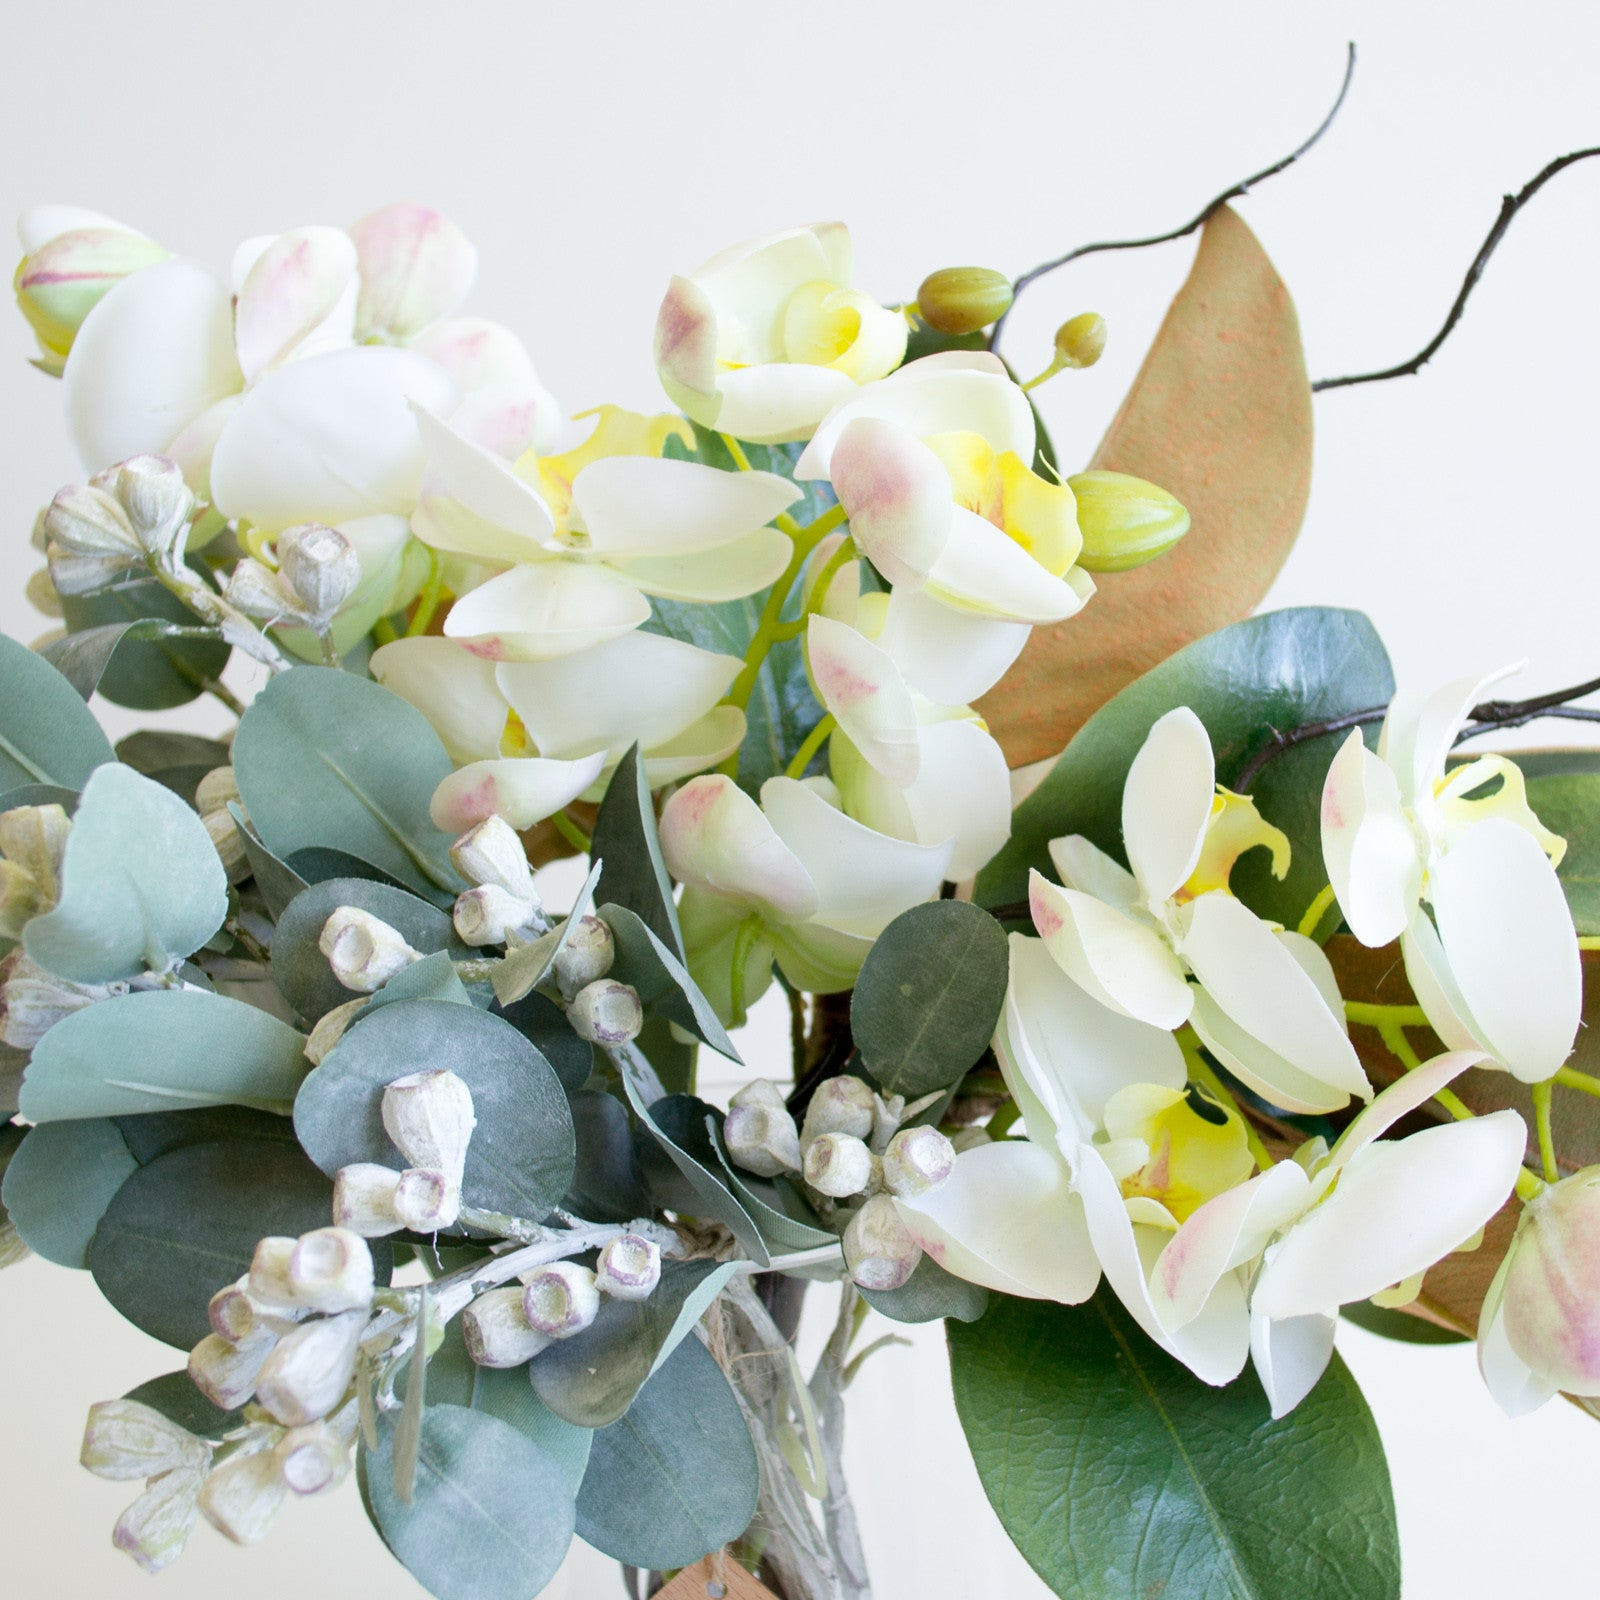 White phalaenopsis orchid and tetragona